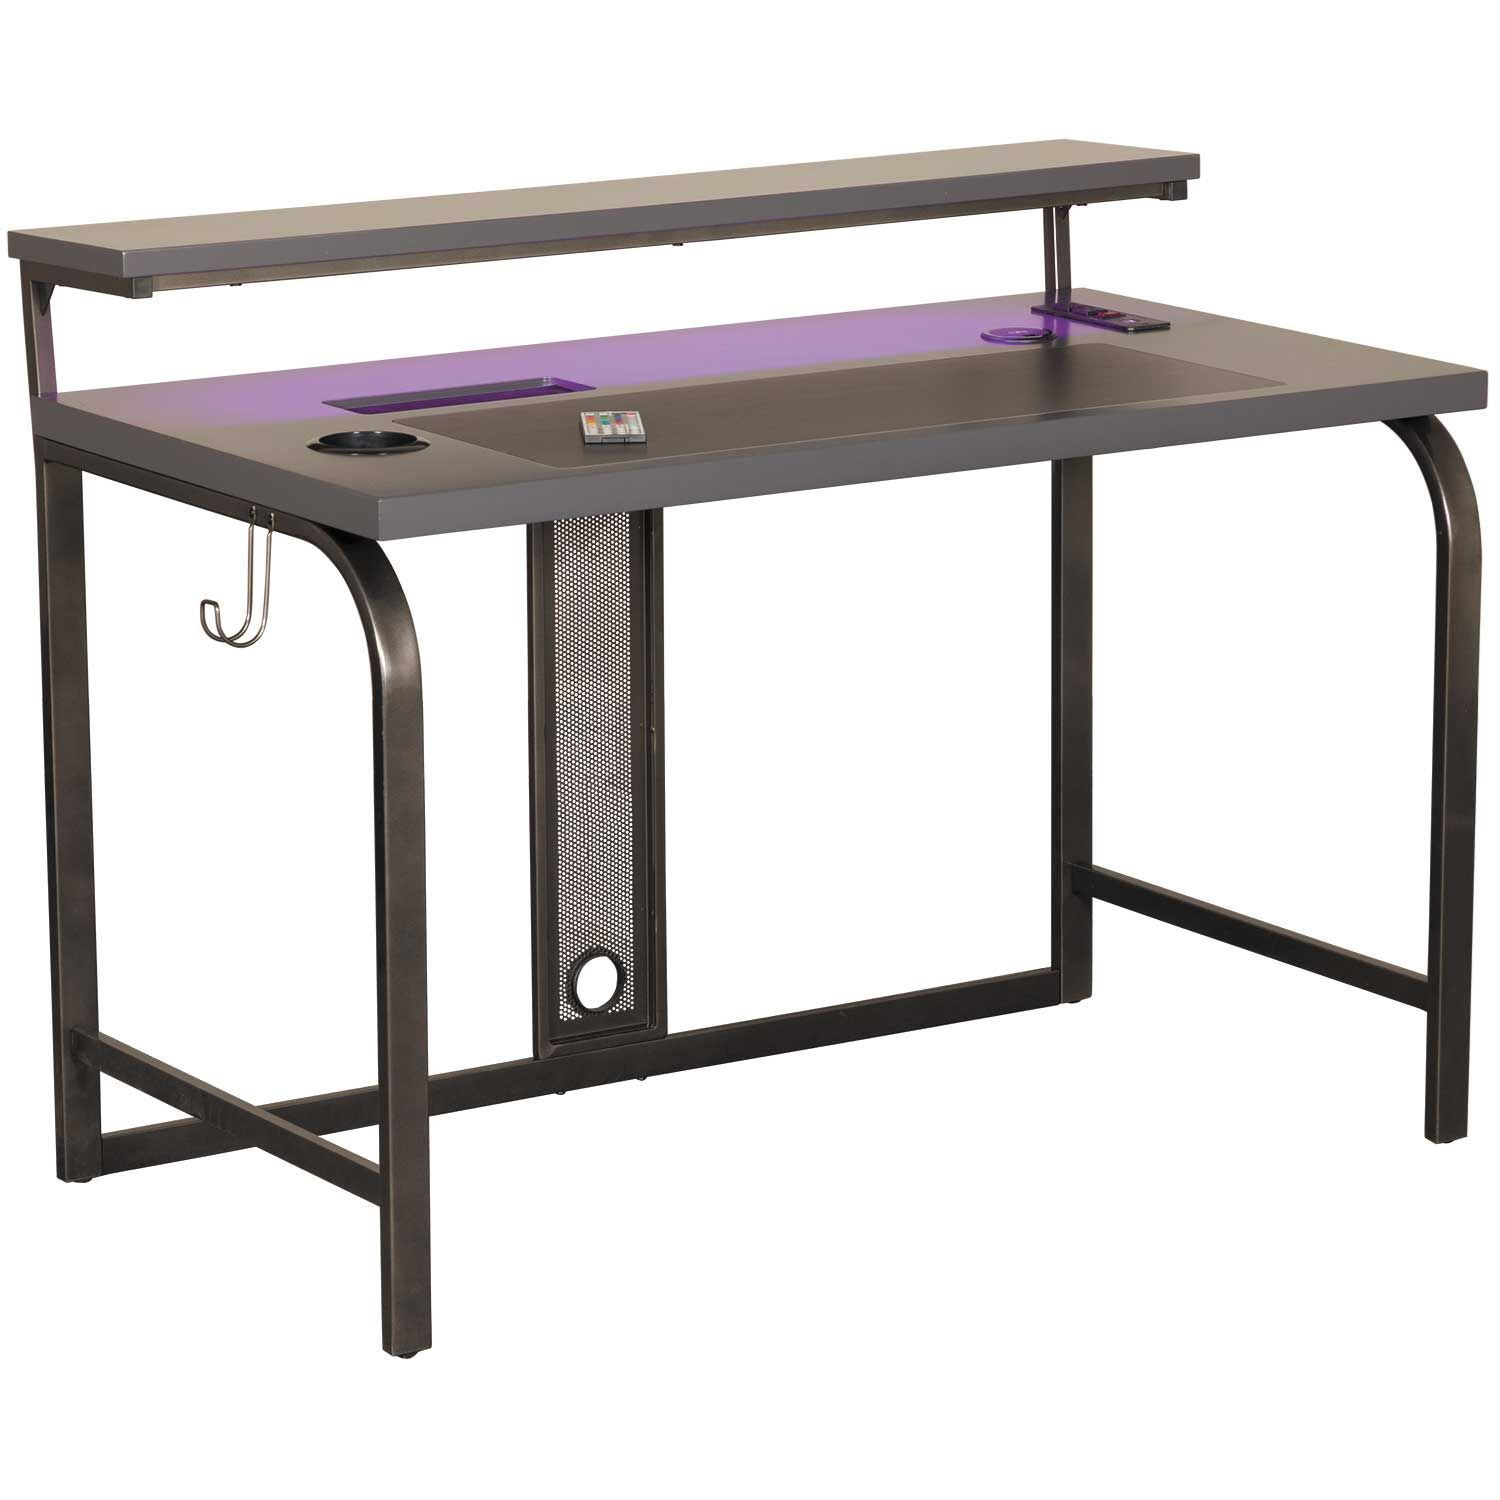 Picture of Series 1.2 Performance Desk